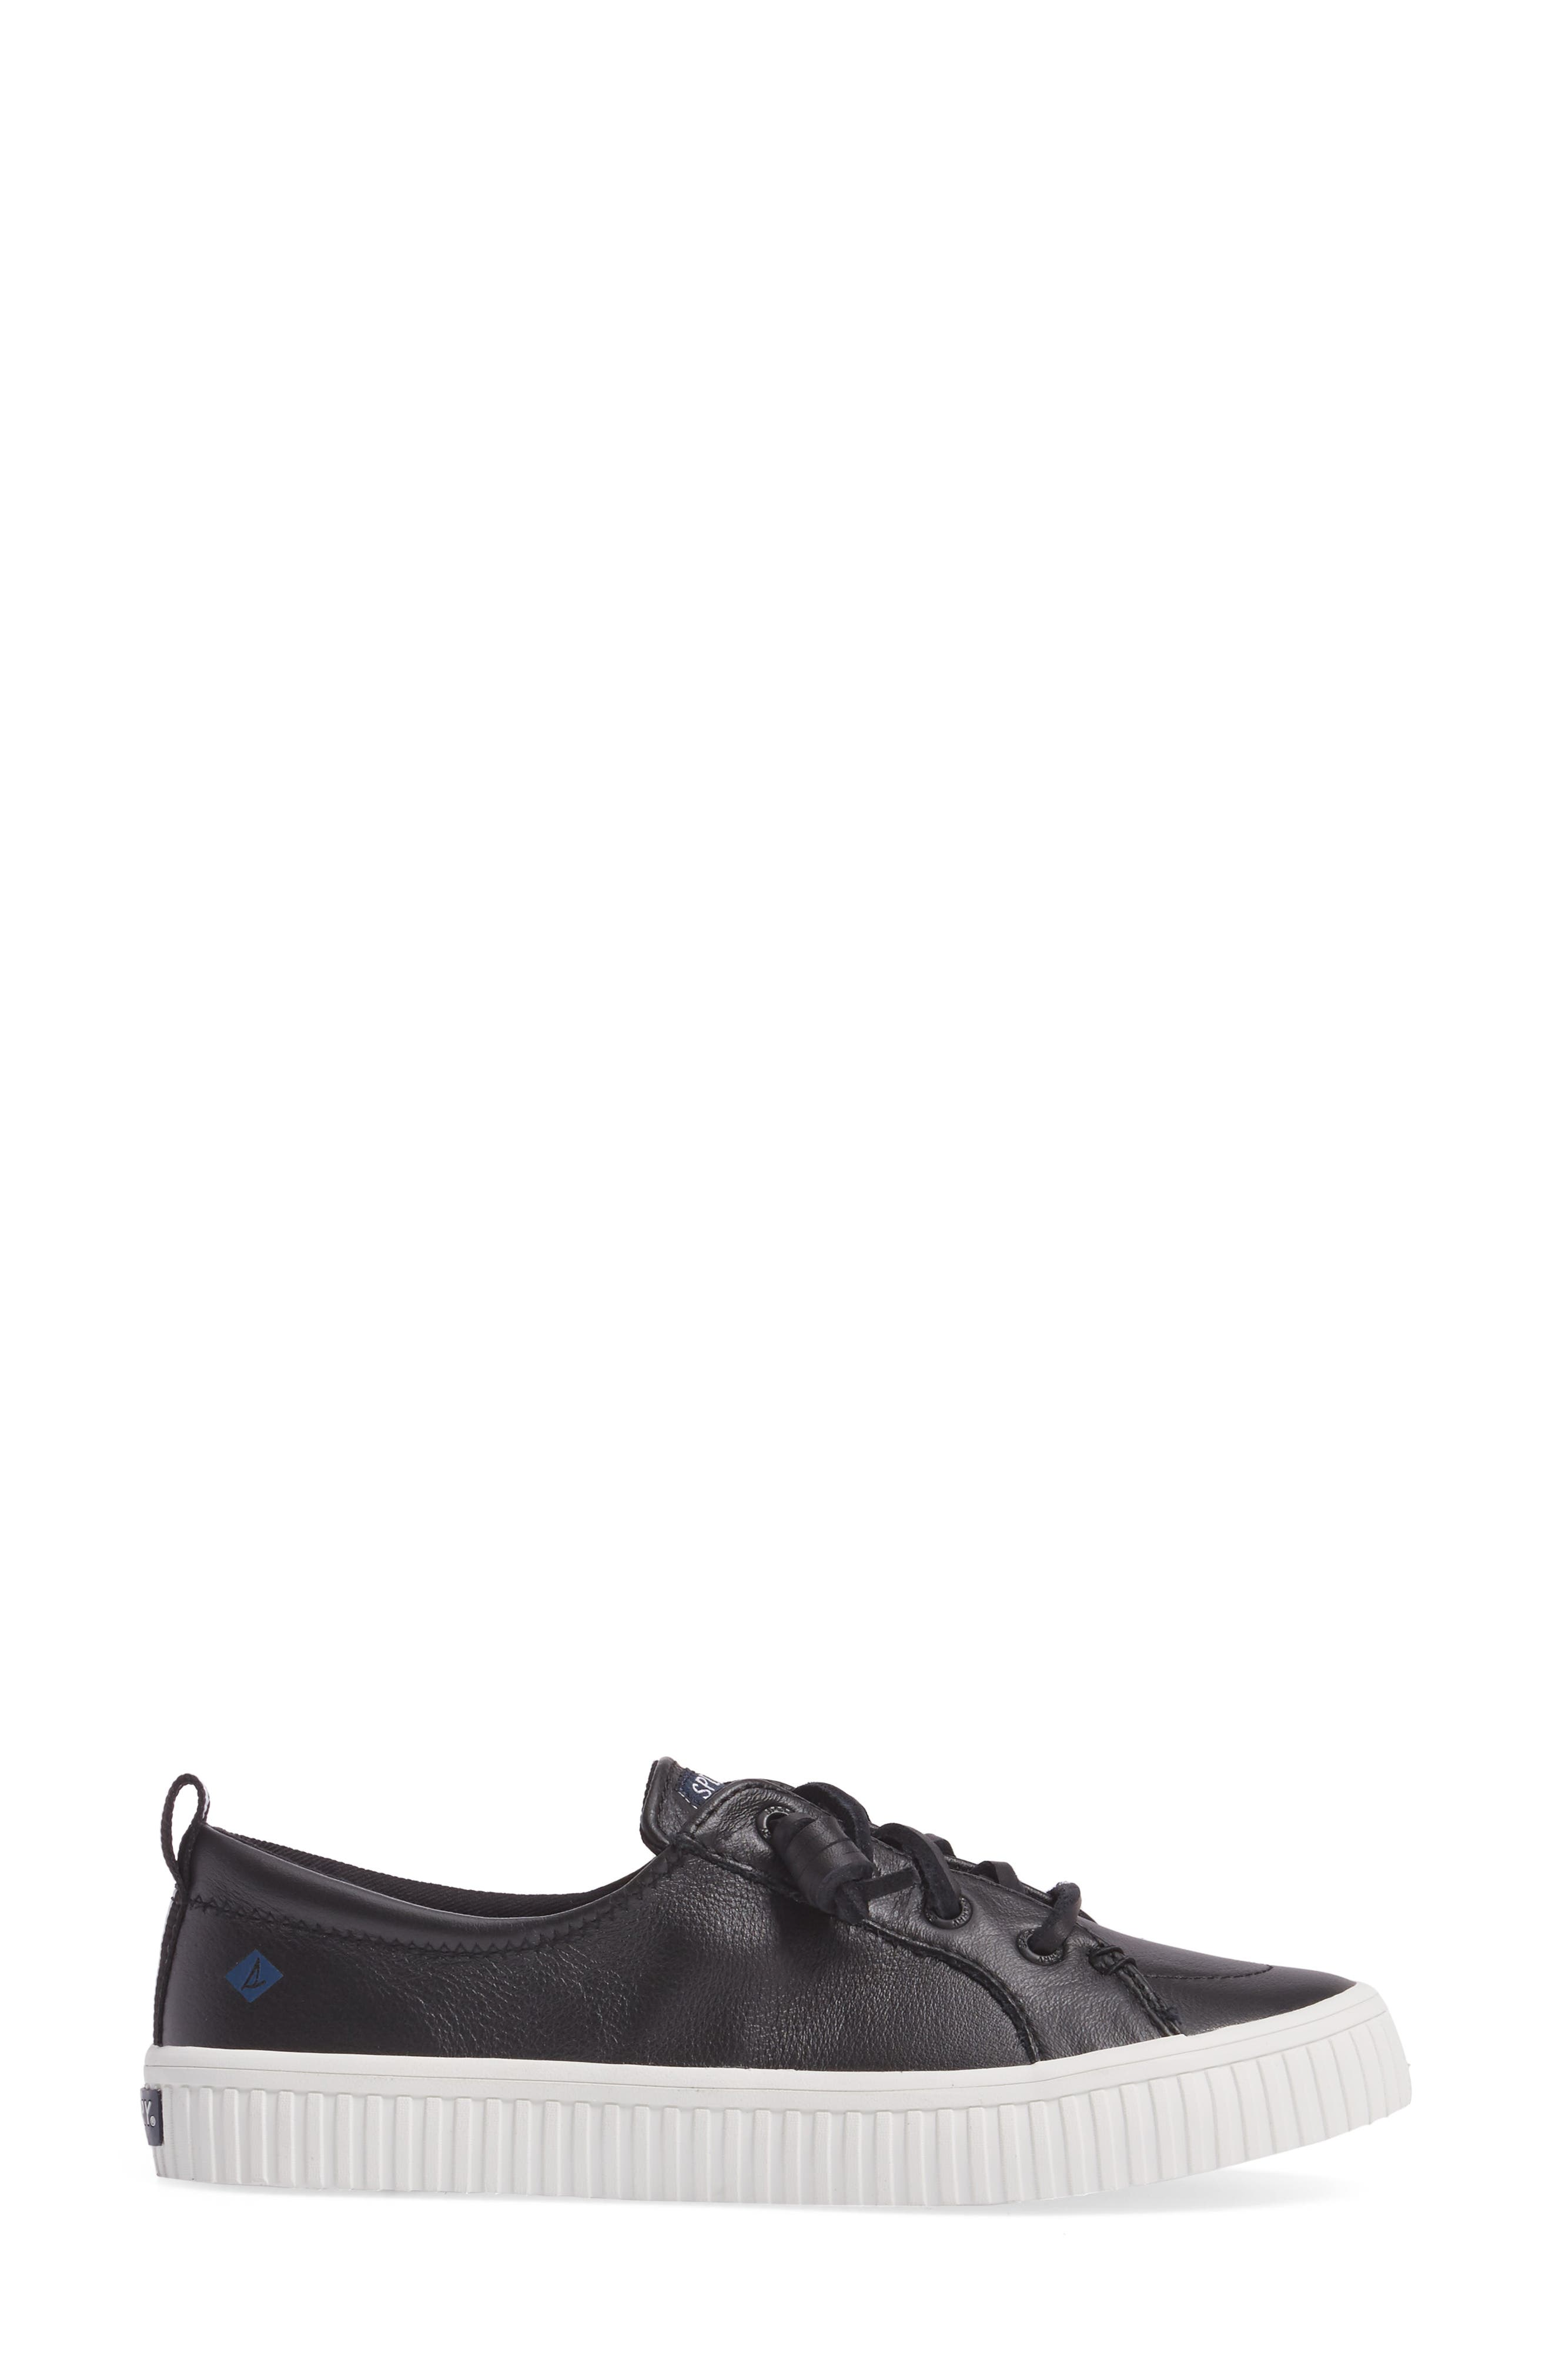 Crest Vibe Creeper Sneaker,                             Alternate thumbnail 3, color,                             Black Leather